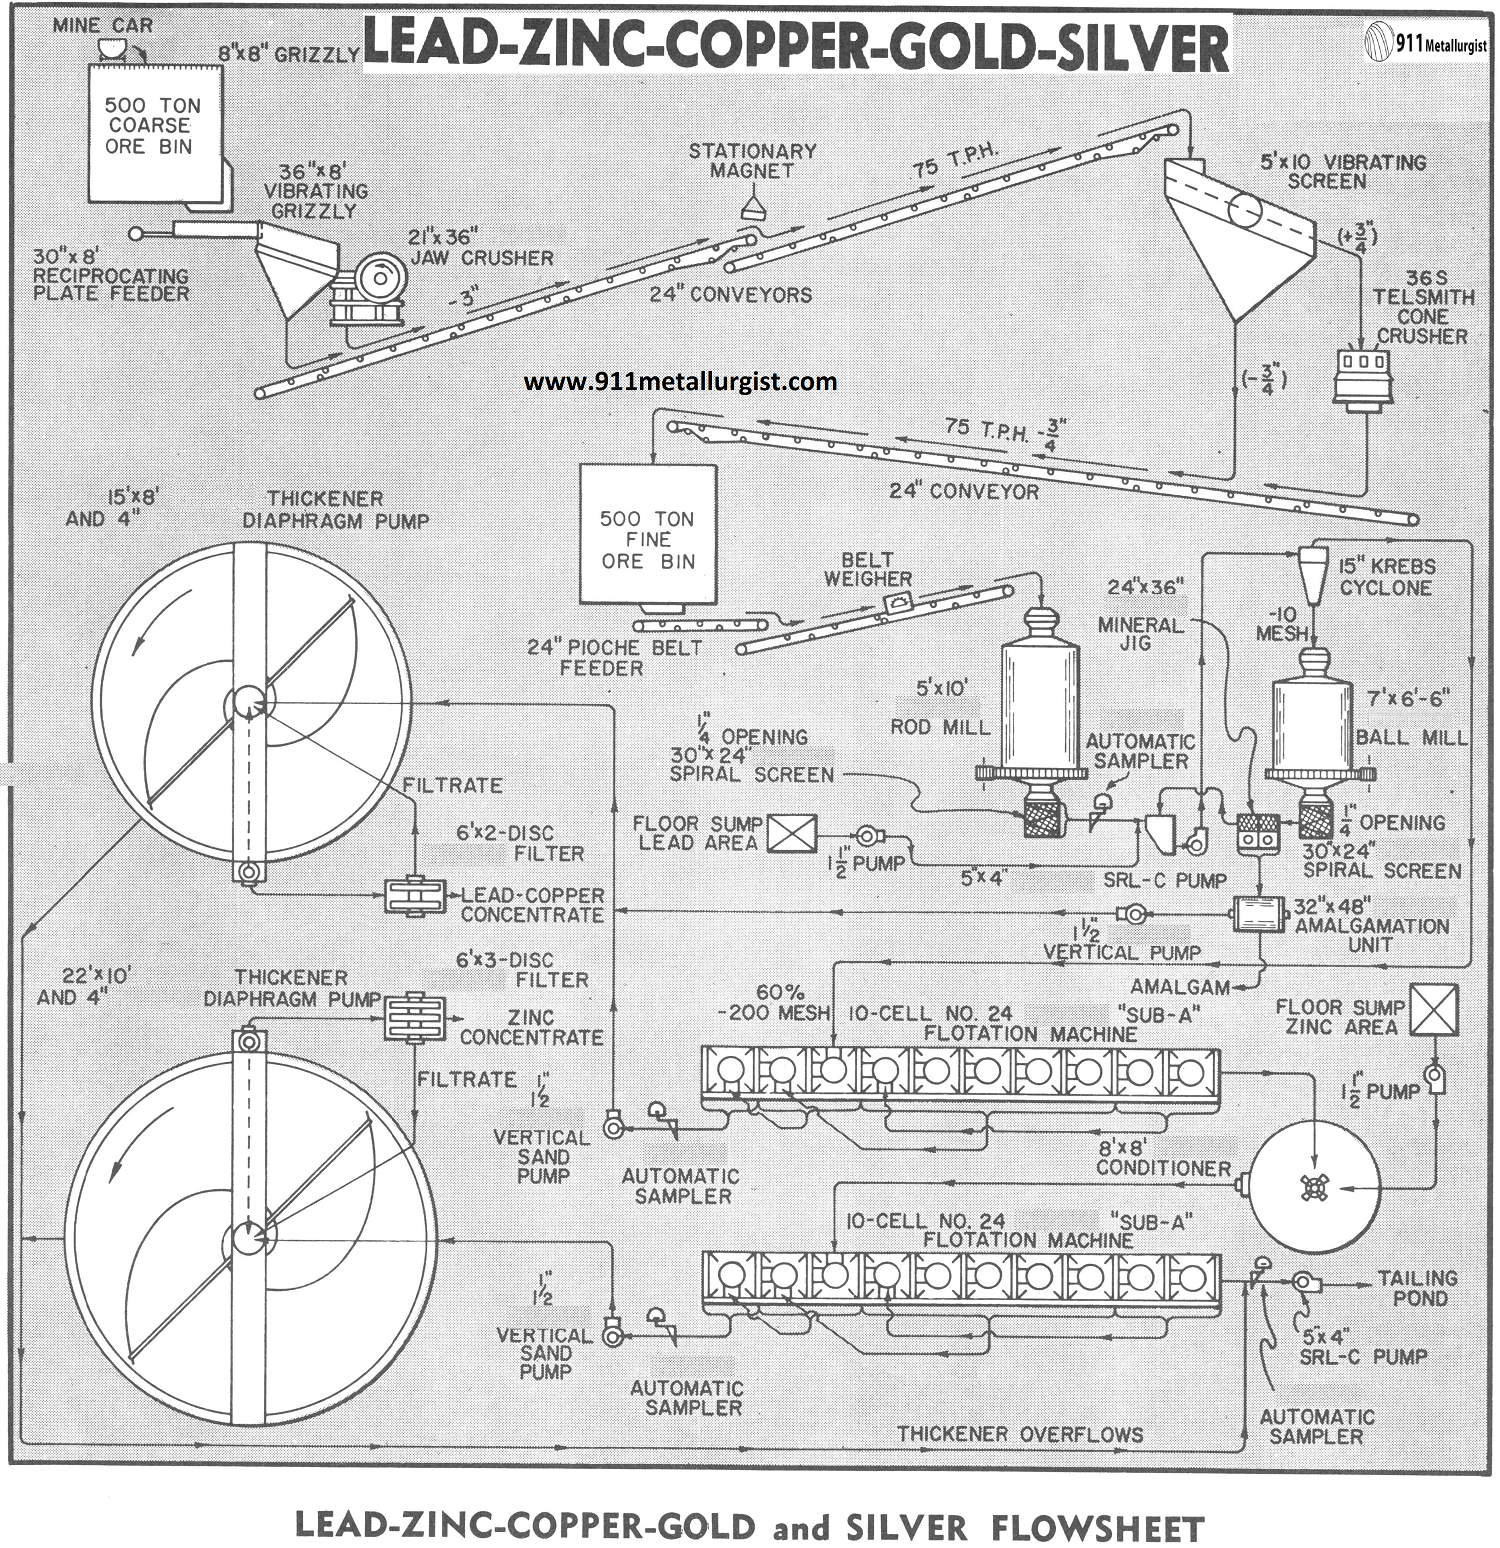 Lead-Zinc-Copper-Gold and Silver Flowsheet